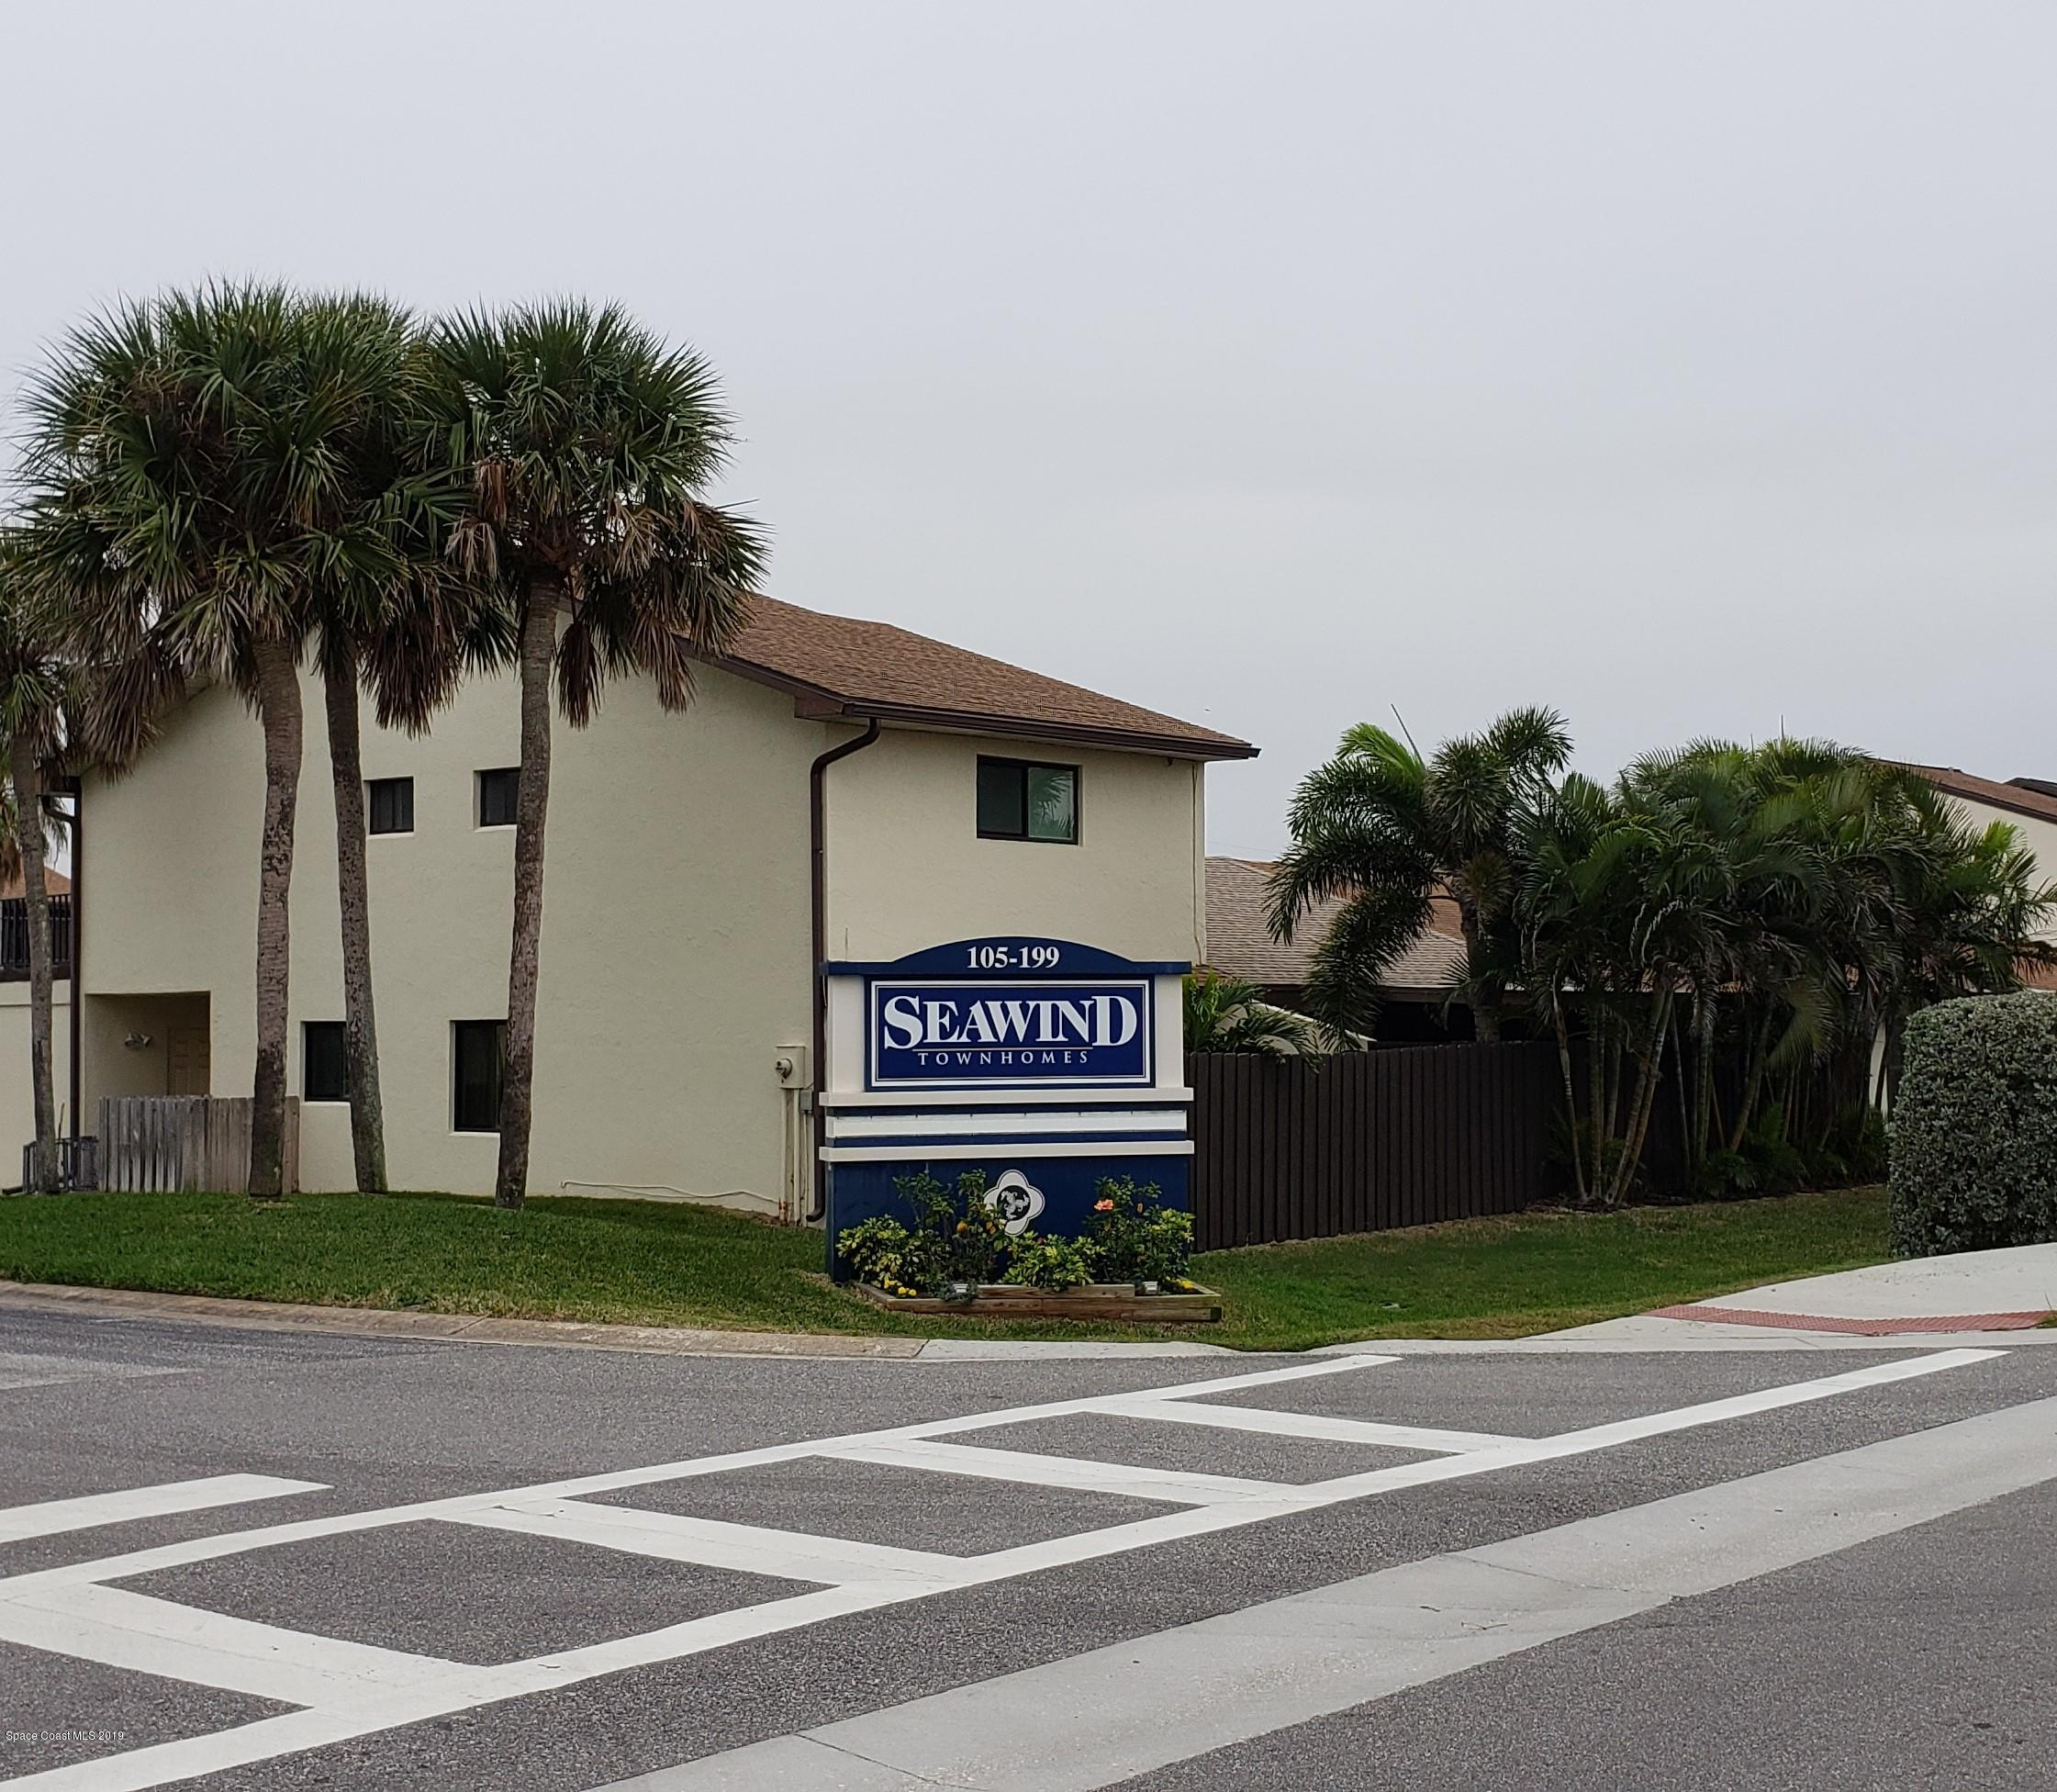 Single Family Home for Rent at 175 Seawind 175 Seawind Satellite Beach, Florida 32937 United States